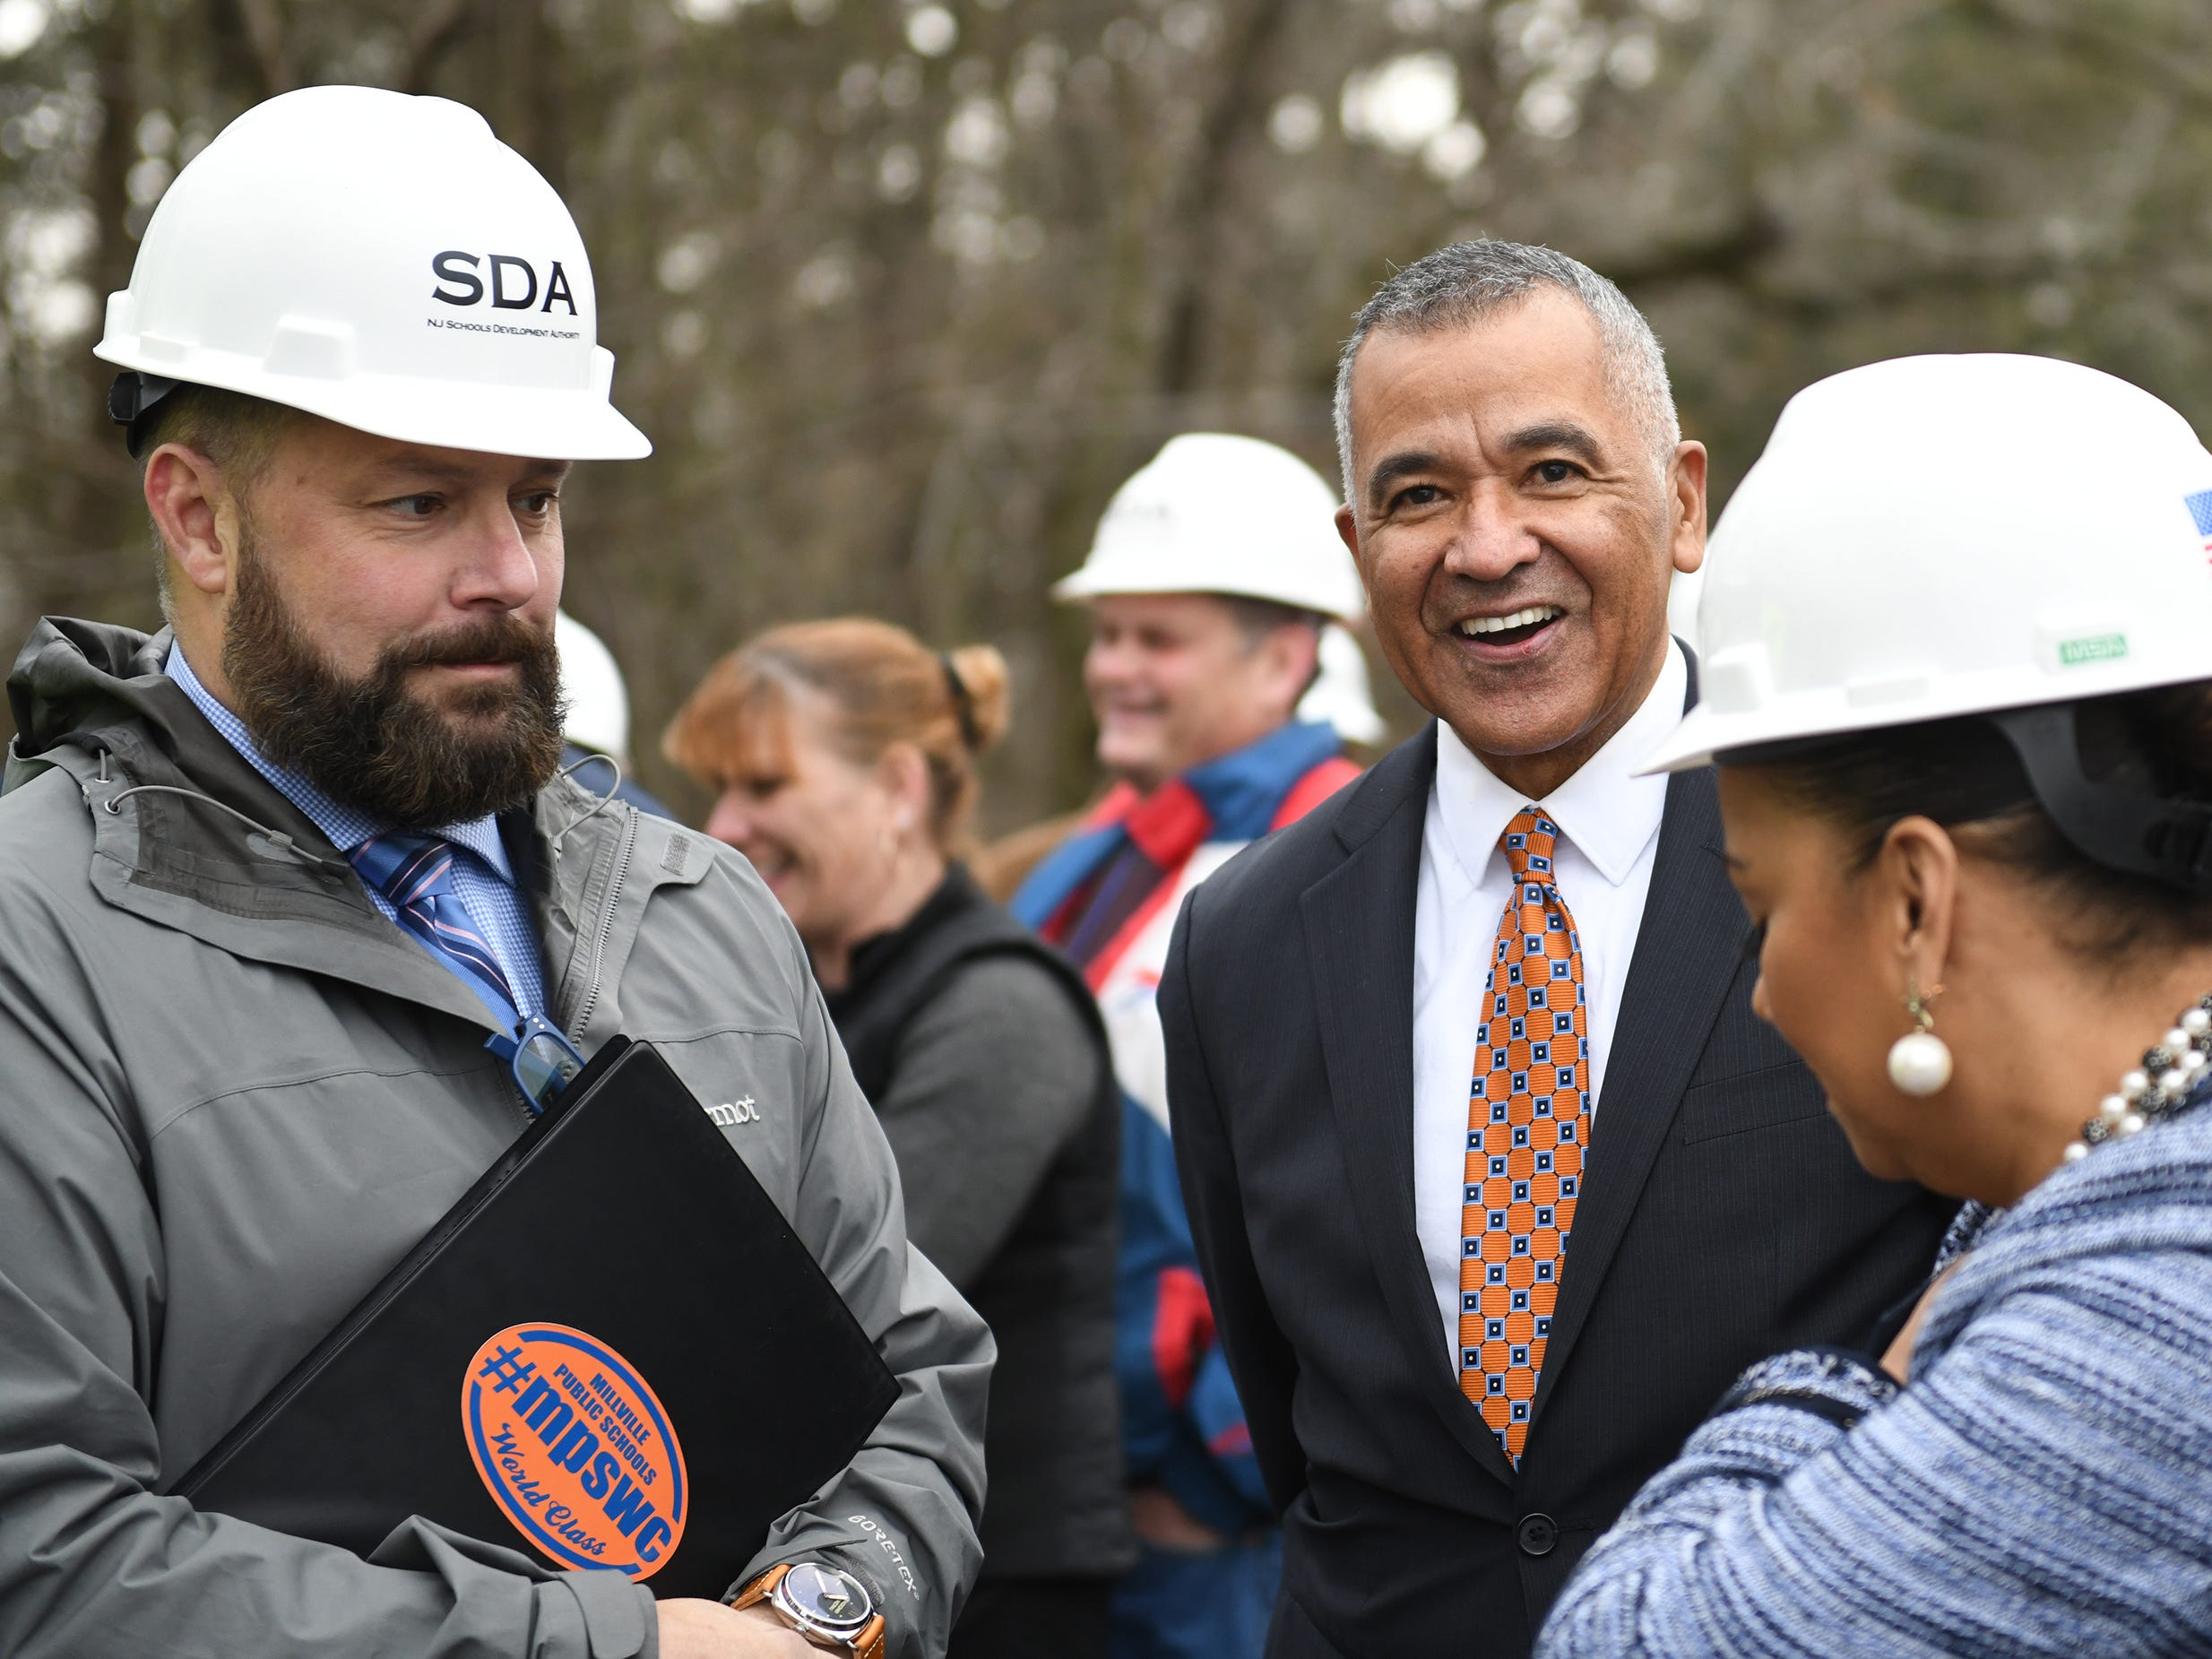 Superintendent David Gentile (left) and Mayor Michael Santiago took part in the groundbreaking ceremony at Millville High School on Thursday, Feb. 7, 2019.